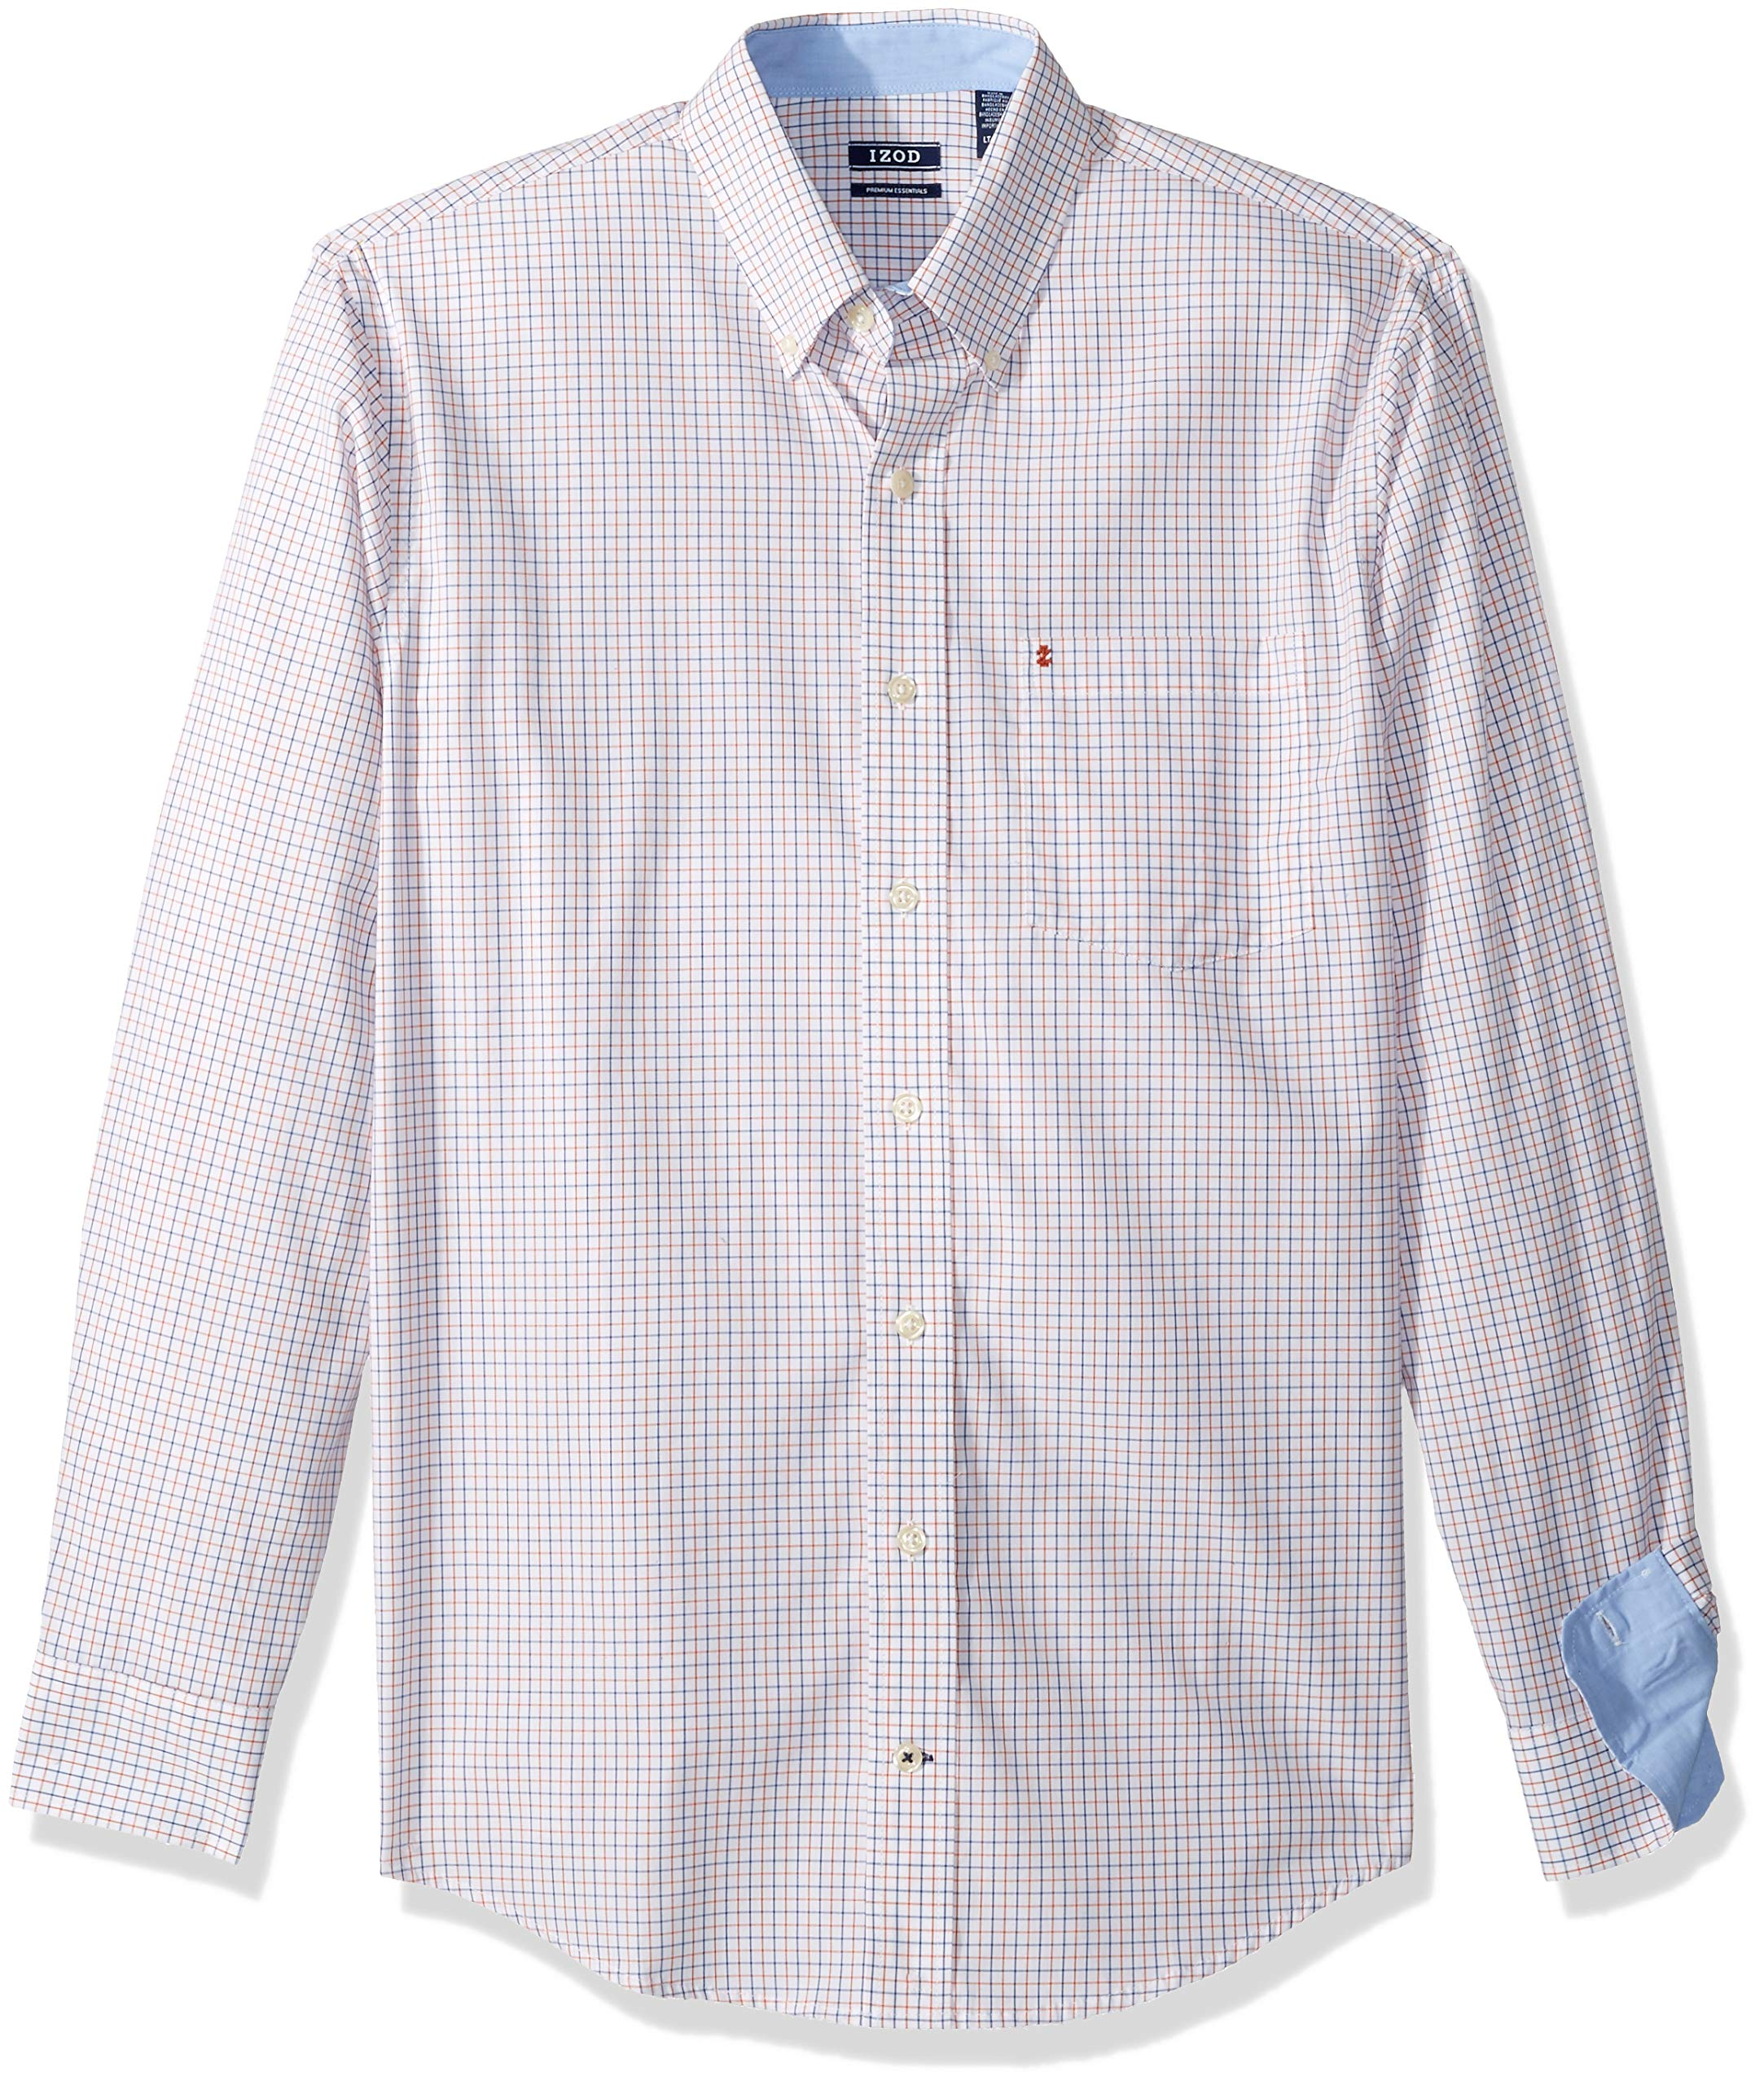 Mens Big and Tall Long Sleeve Cotton Stretch Button Down Shirt